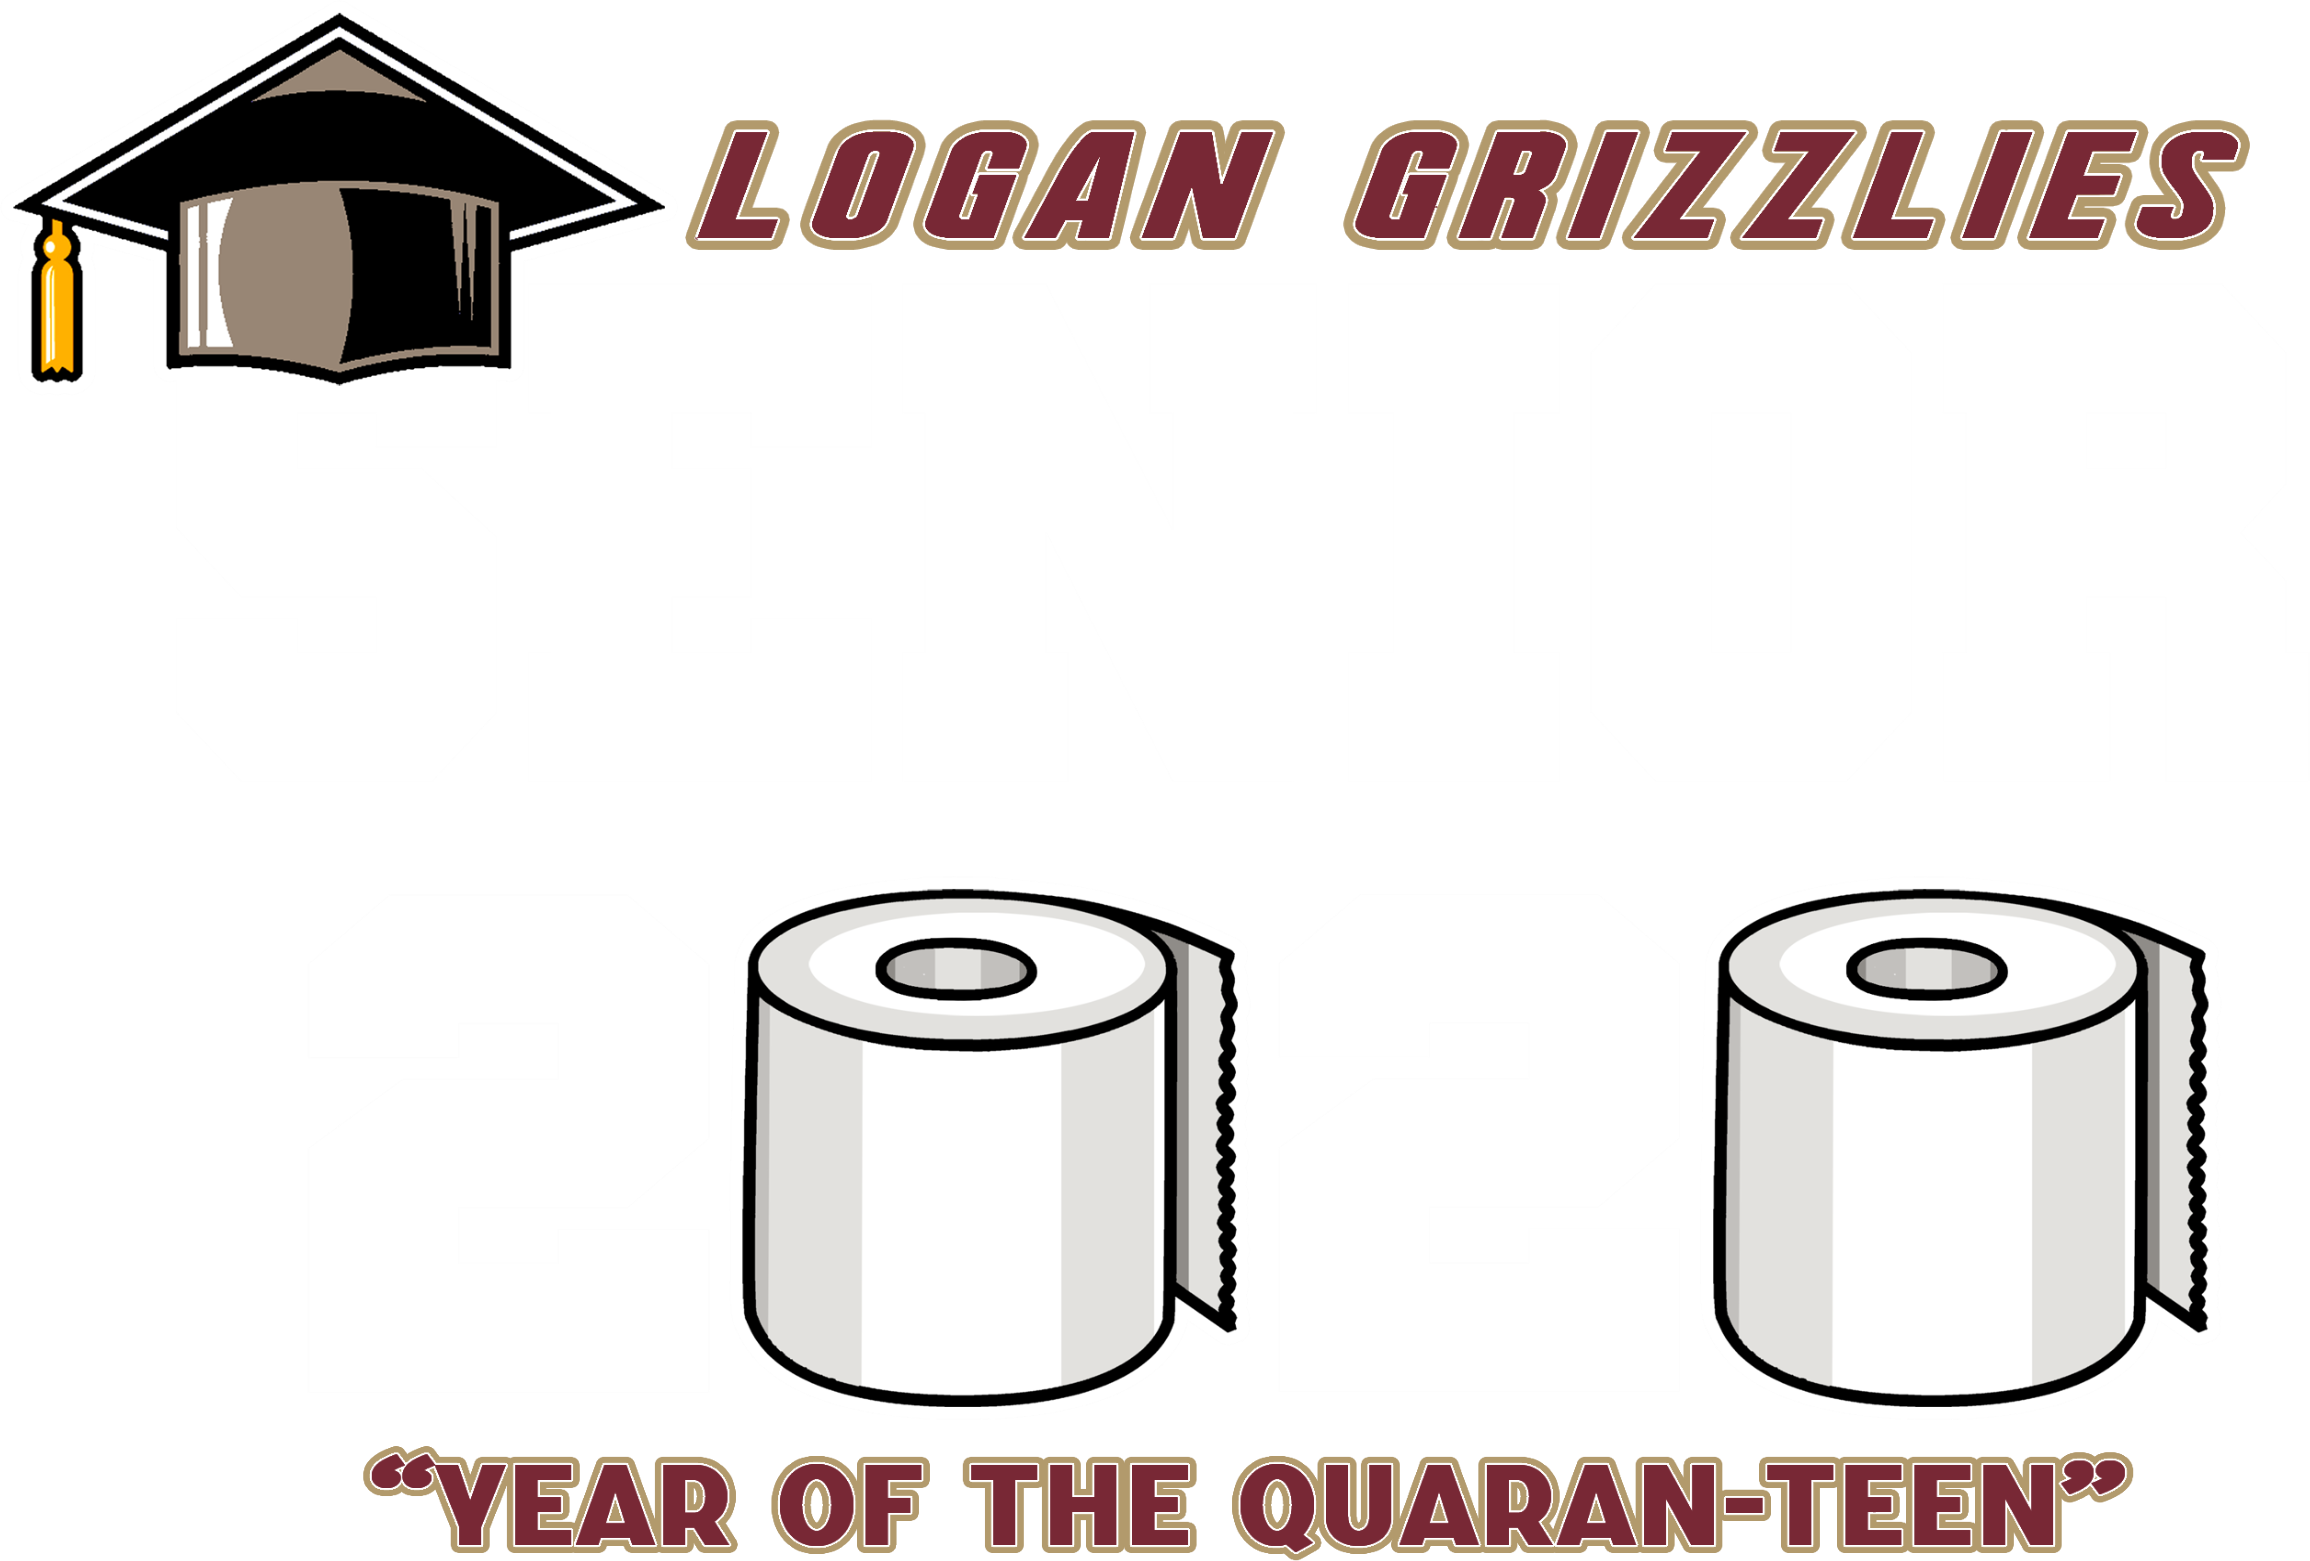 Logan Grizzlies QuaranTEEN Senior 2020